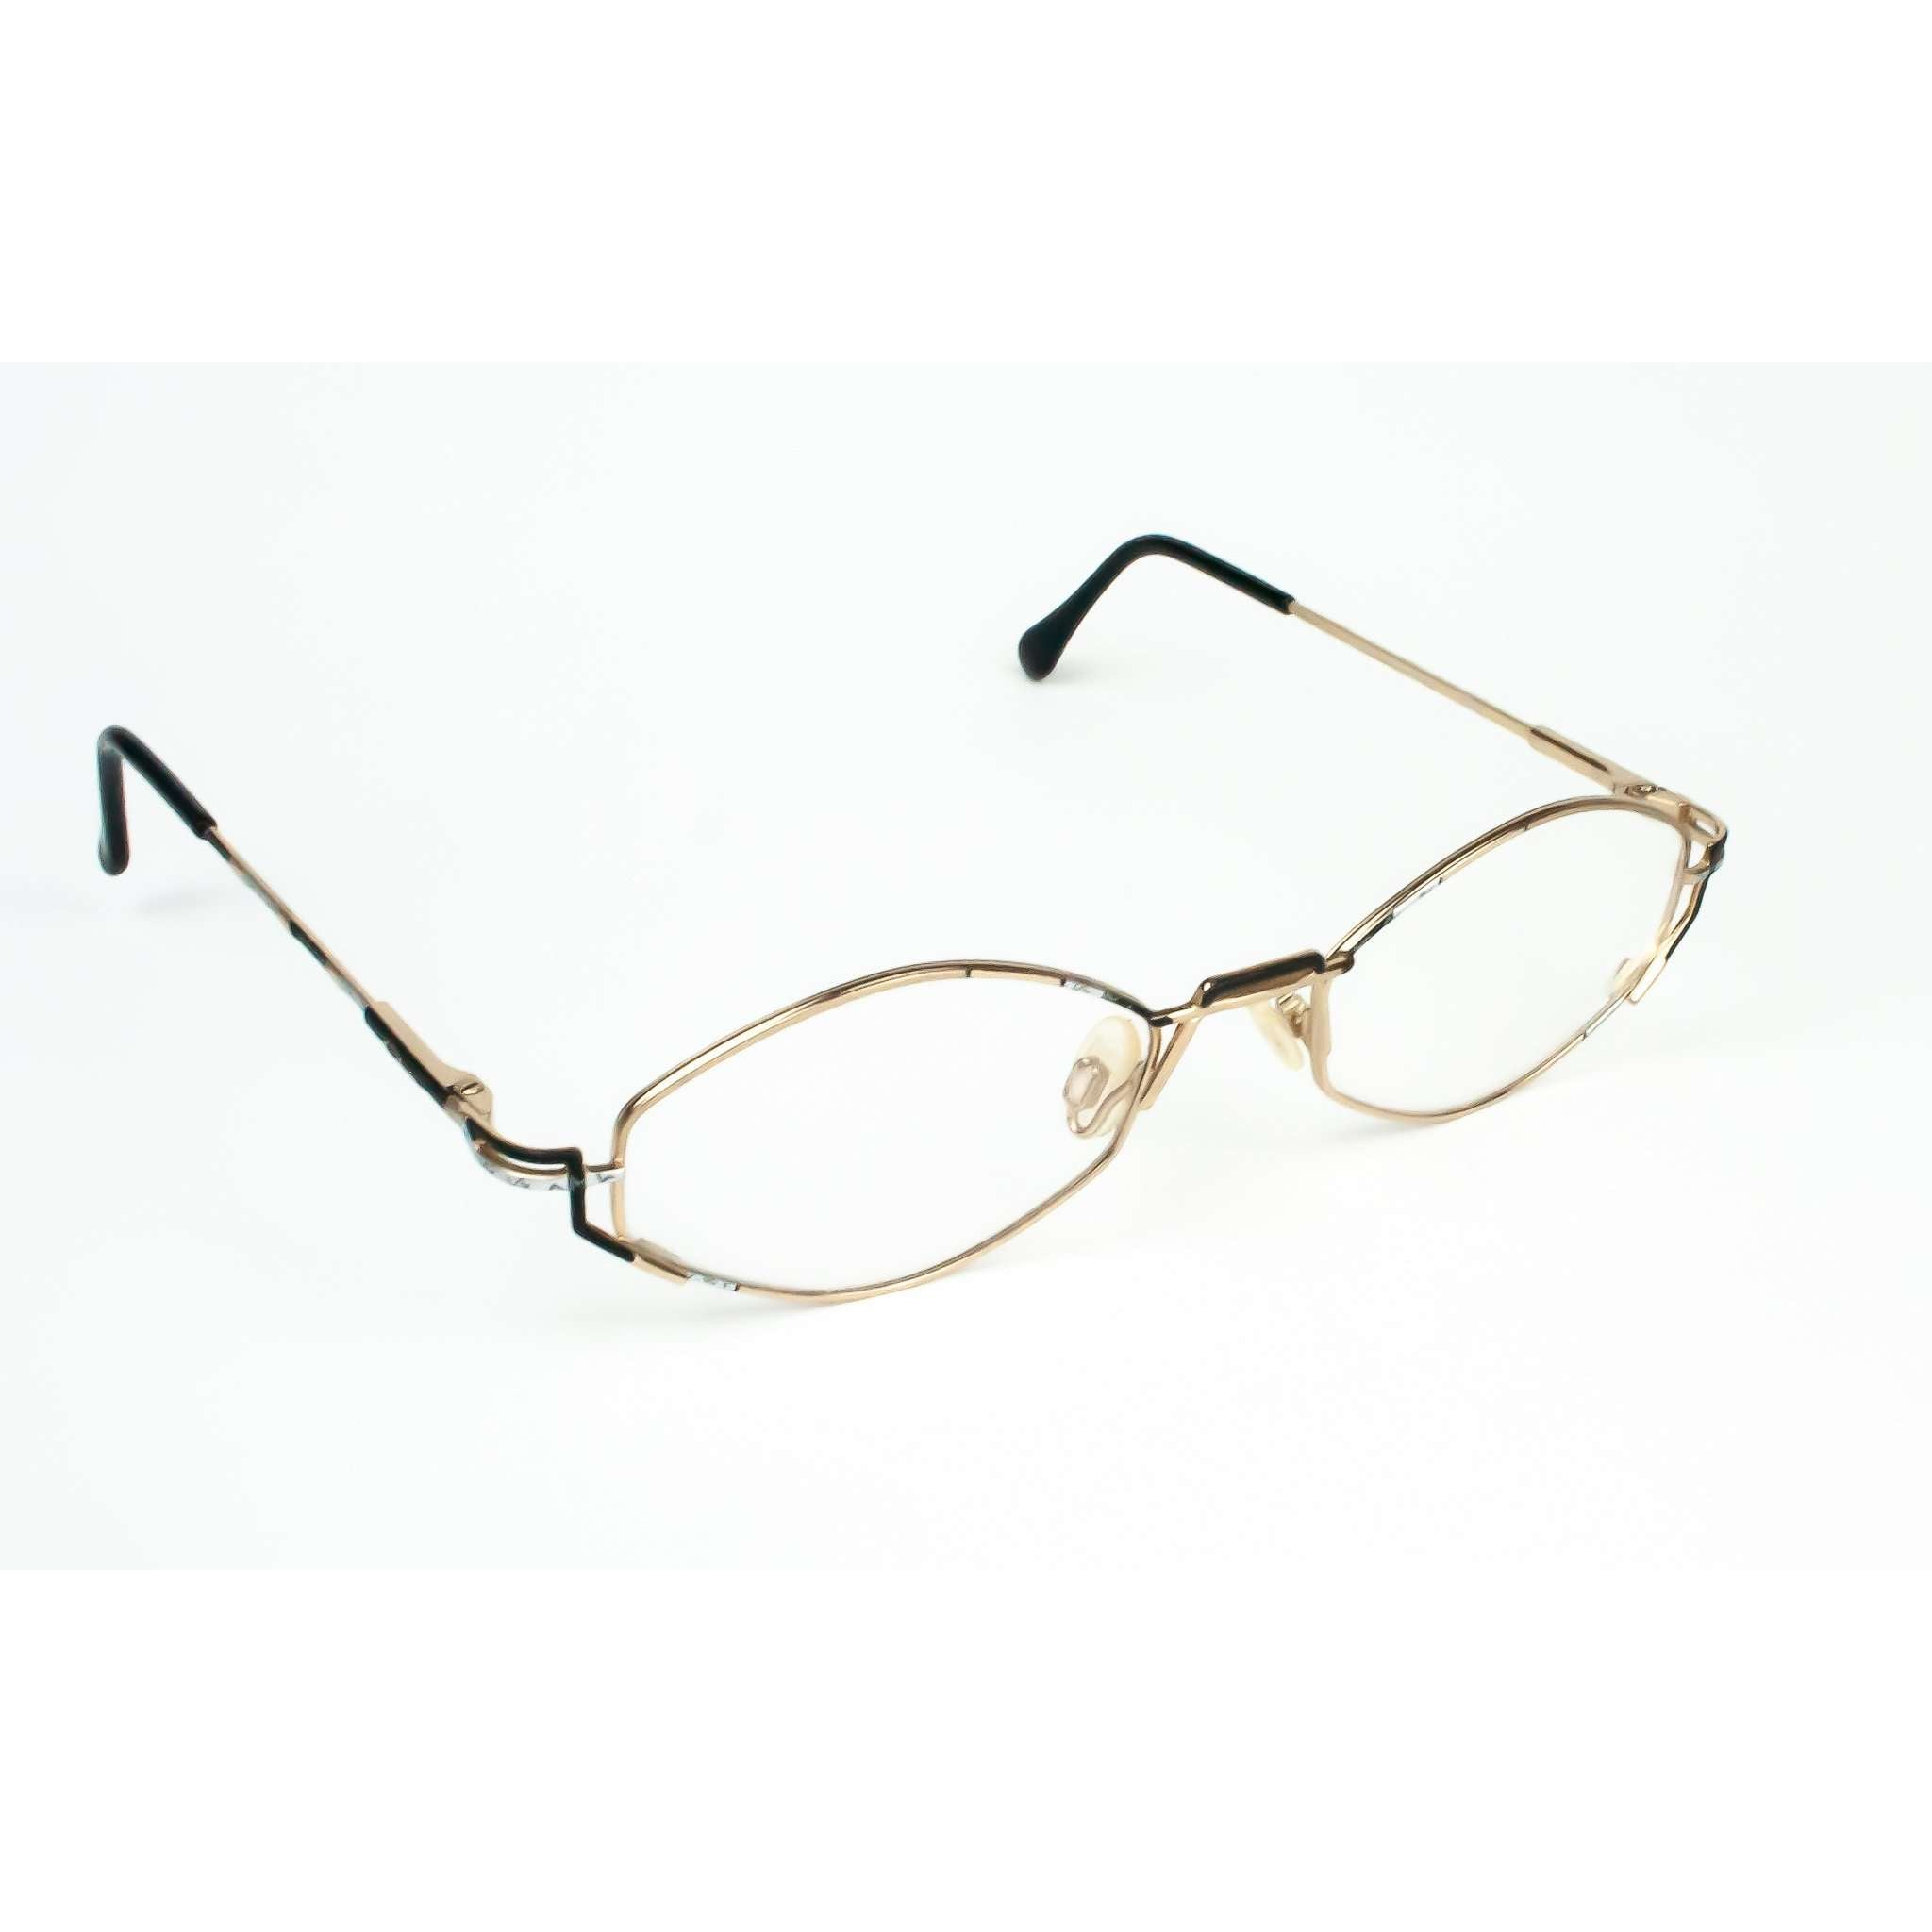 Cazal Model 415 Gold Metal Retro Glasses